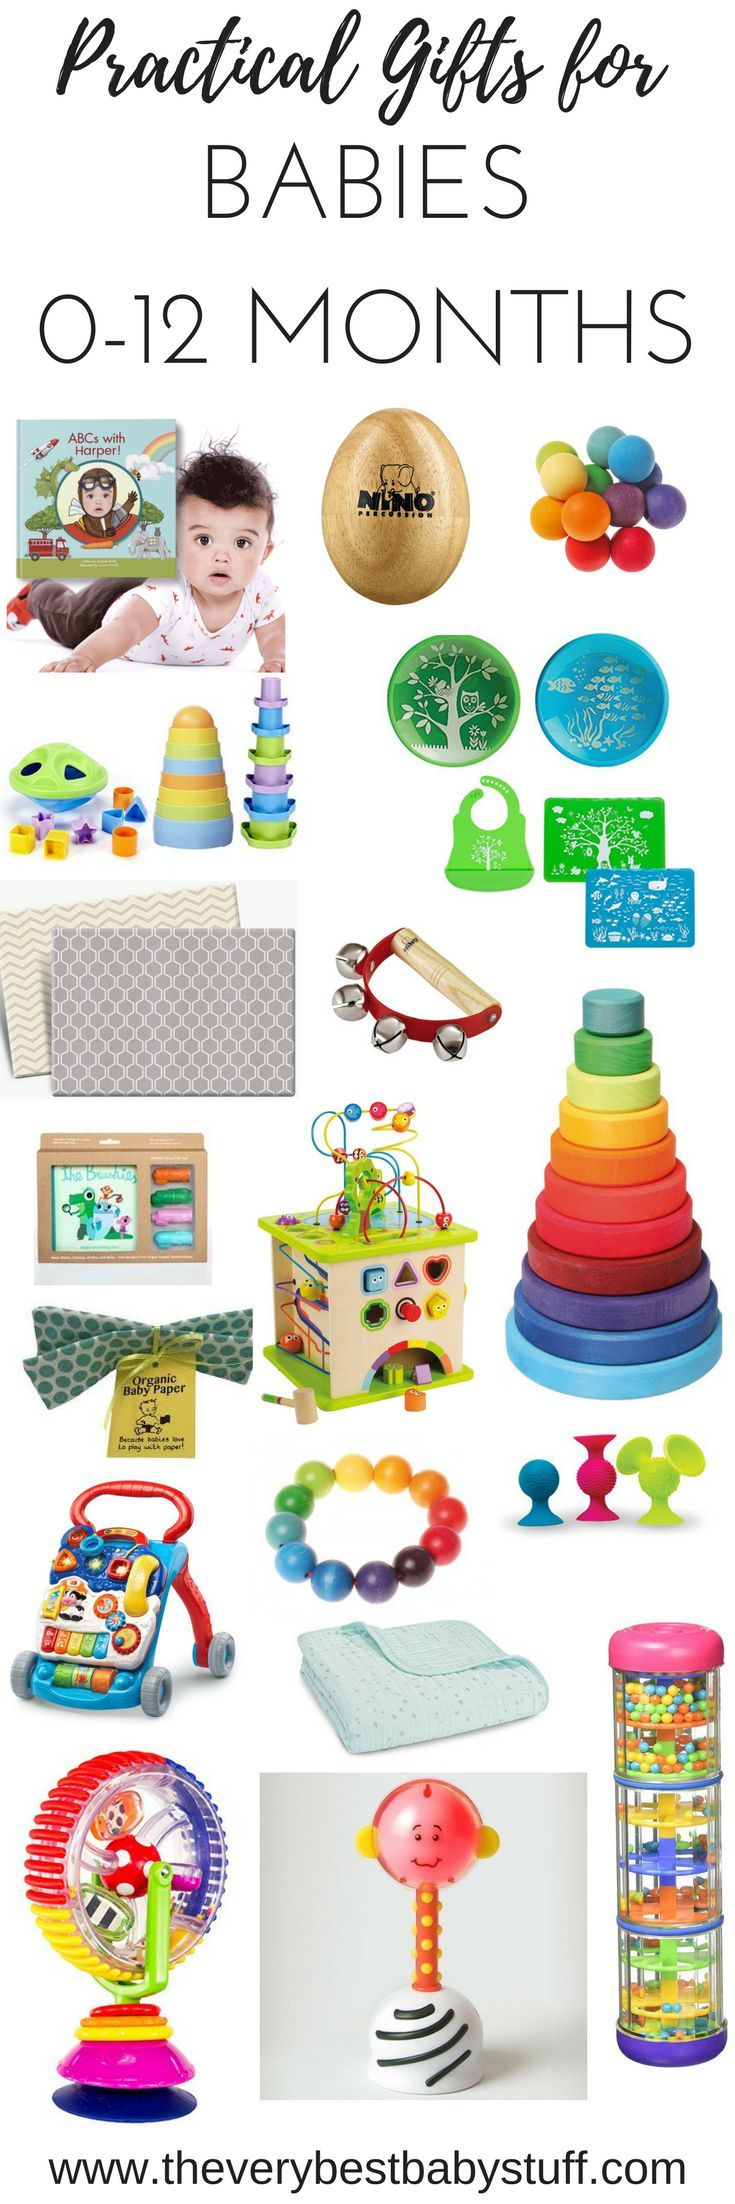 holiday gift guide 2016, baby gifts, gifts for babies, practical baby gifts from The Very Best Baby Stuff.  Hape, Activity Cube, wooden toys, baby walker, vtech, personalized baby book, musical instruments, silicone bib, silicone platemat, pipsquigz, crinkle paper, sassy wonder wheel, baby toothbrush, silicone toothbrush, brushies, parklon playmat, play mat. clutching toy, natural toys, German toys, special baby gifts, personalized baby gifts